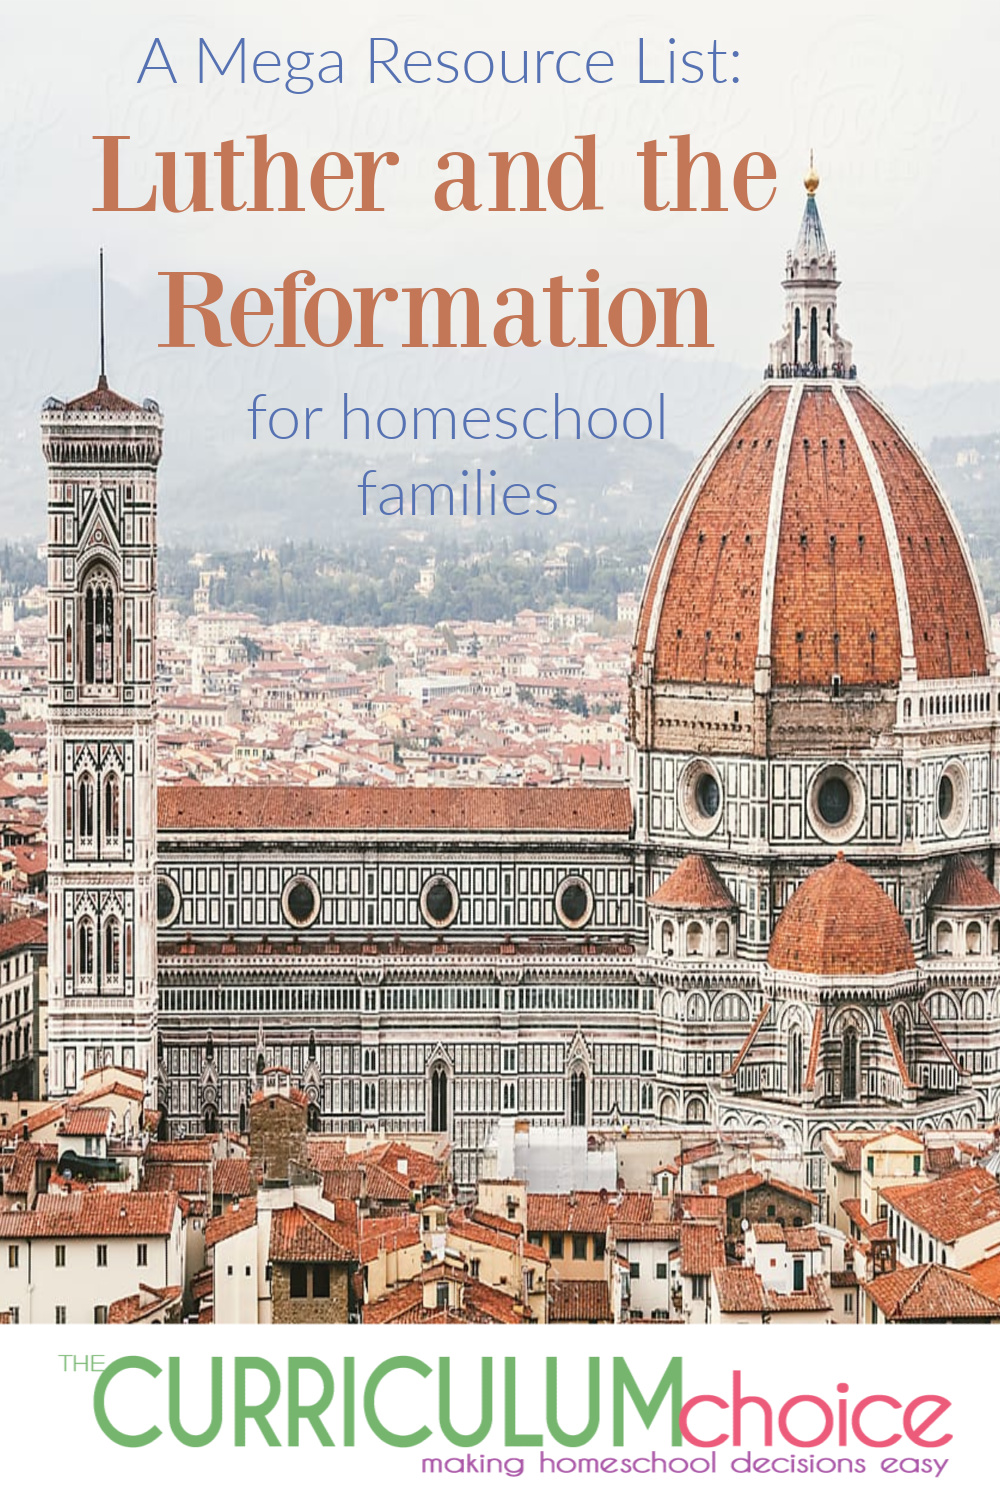 Favorite resources about Martin Luther and the Protestant Reformation. An Ultimate List of Luther and the Reformation Resources for homeschool families.